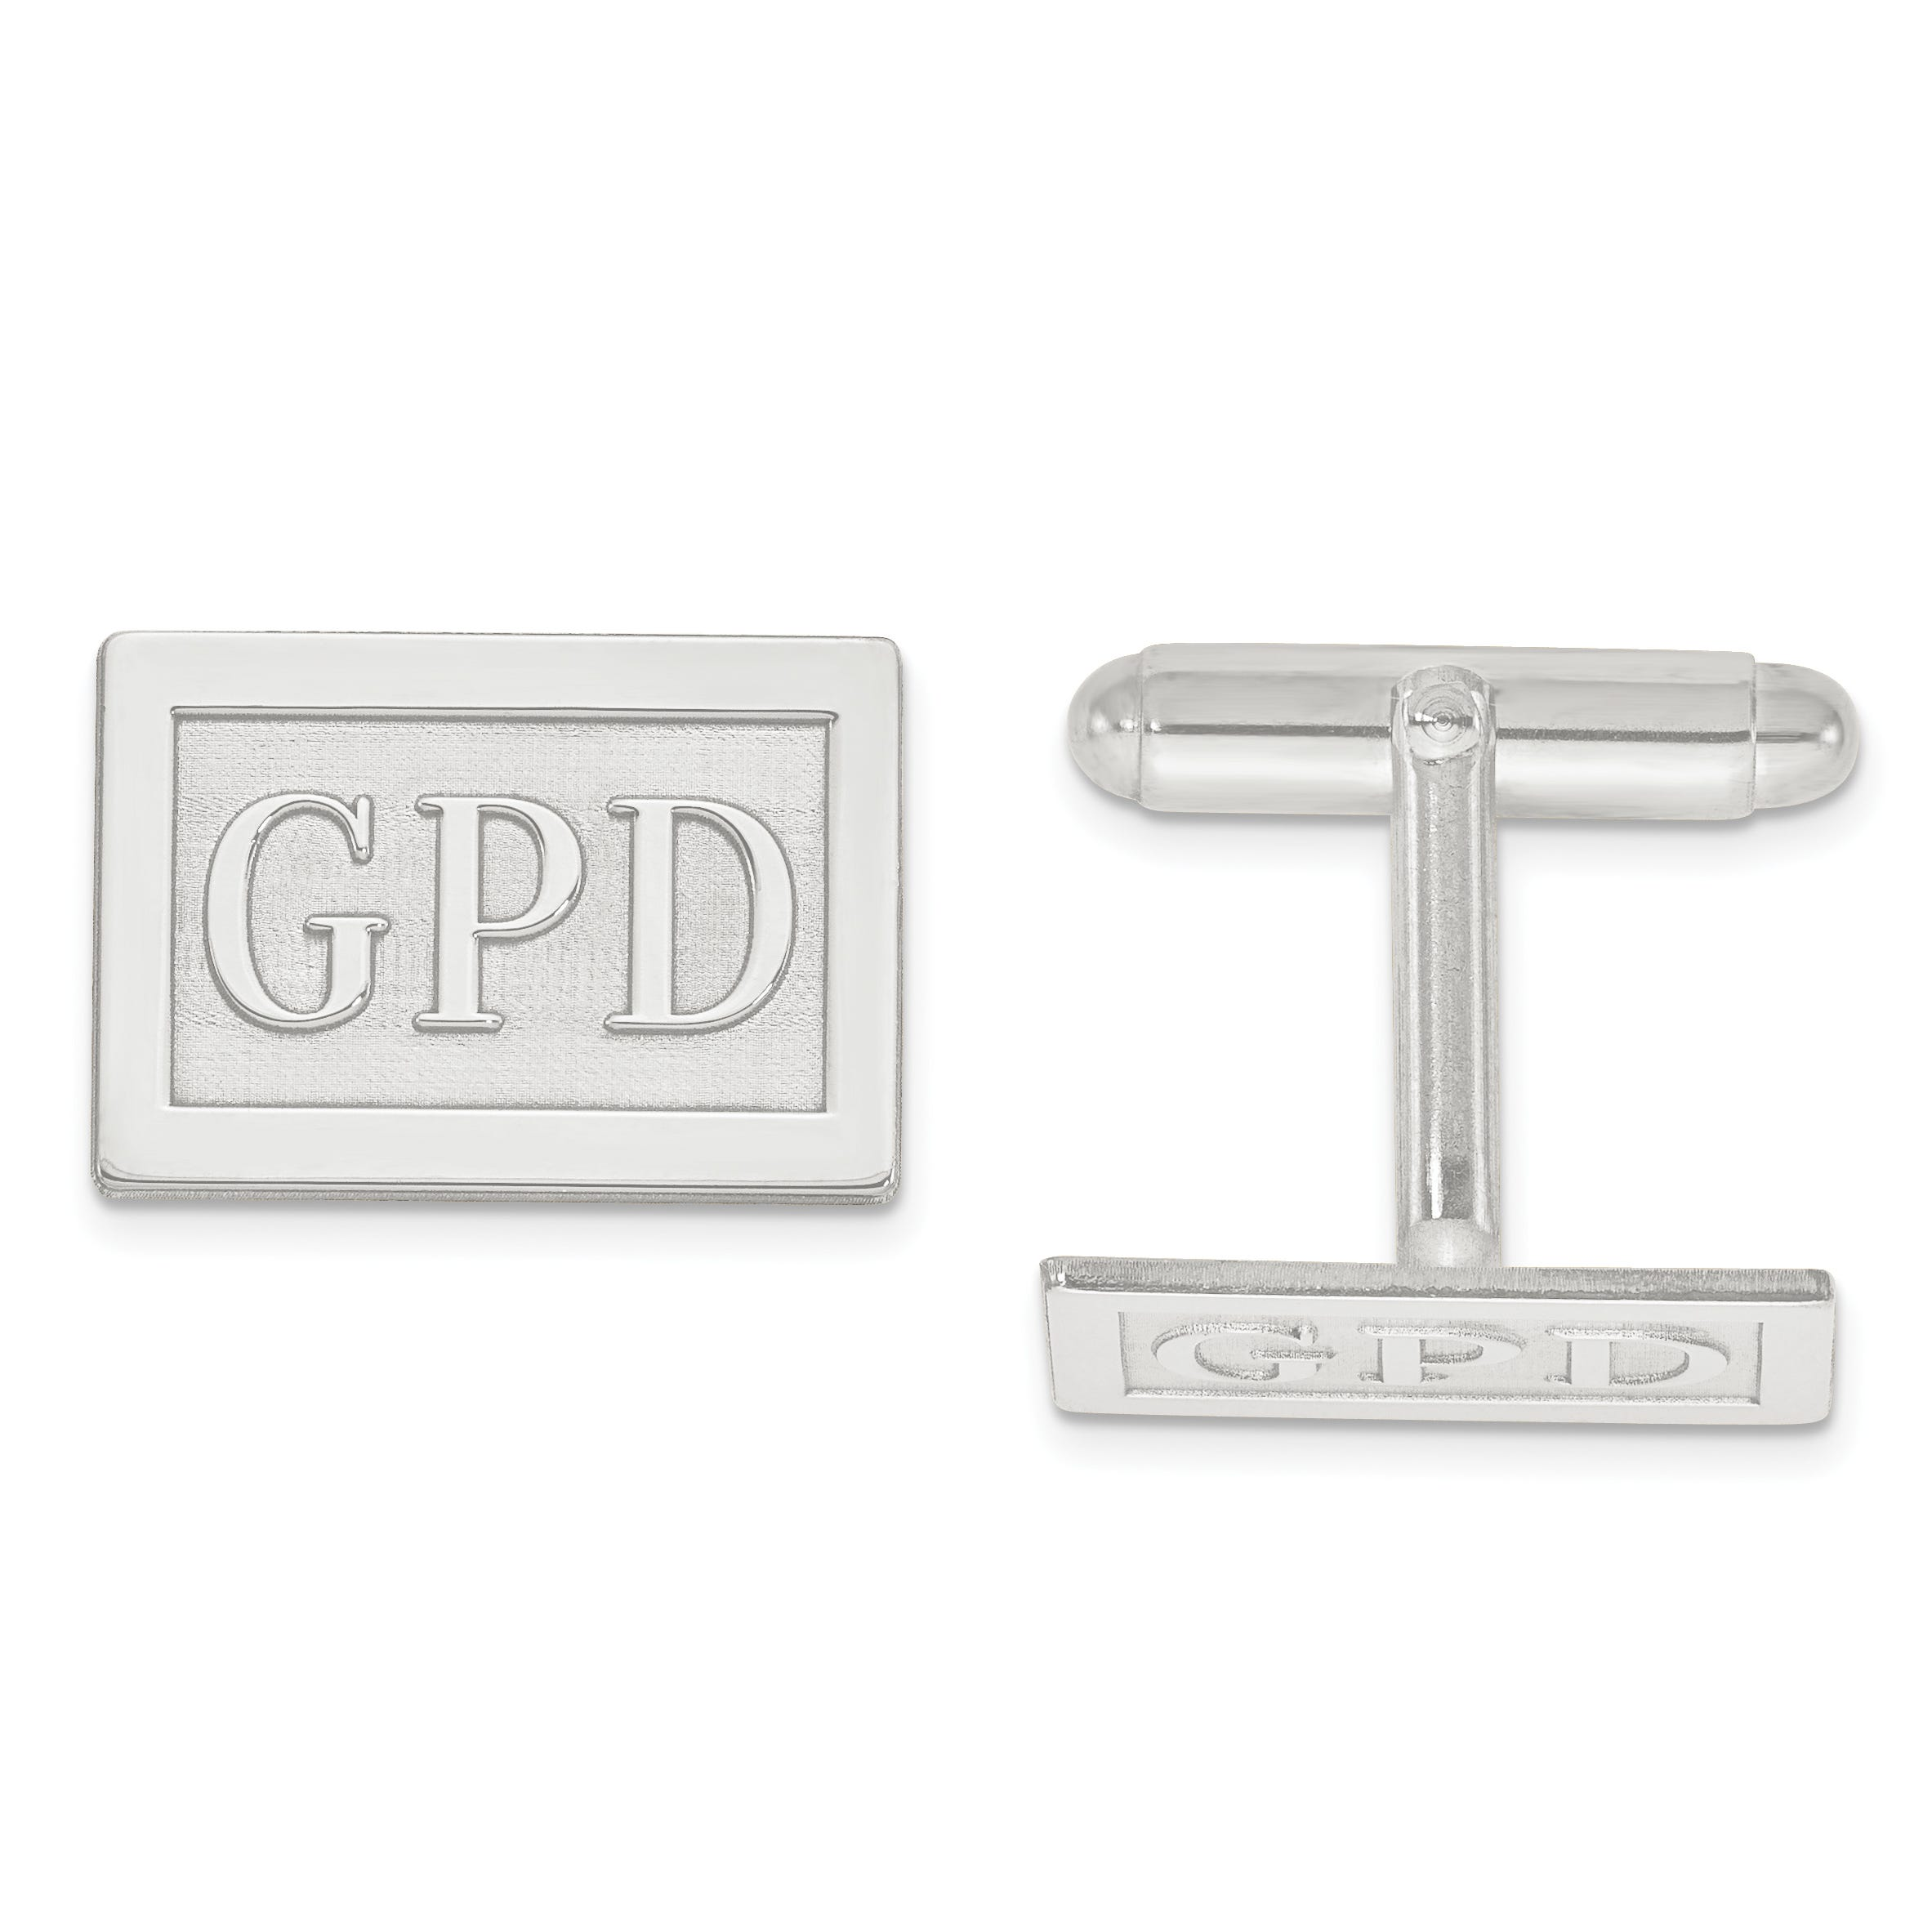 Raised Letters Rectangle Monogram Cuff Links in Sterling Silver (up to 3 letters)